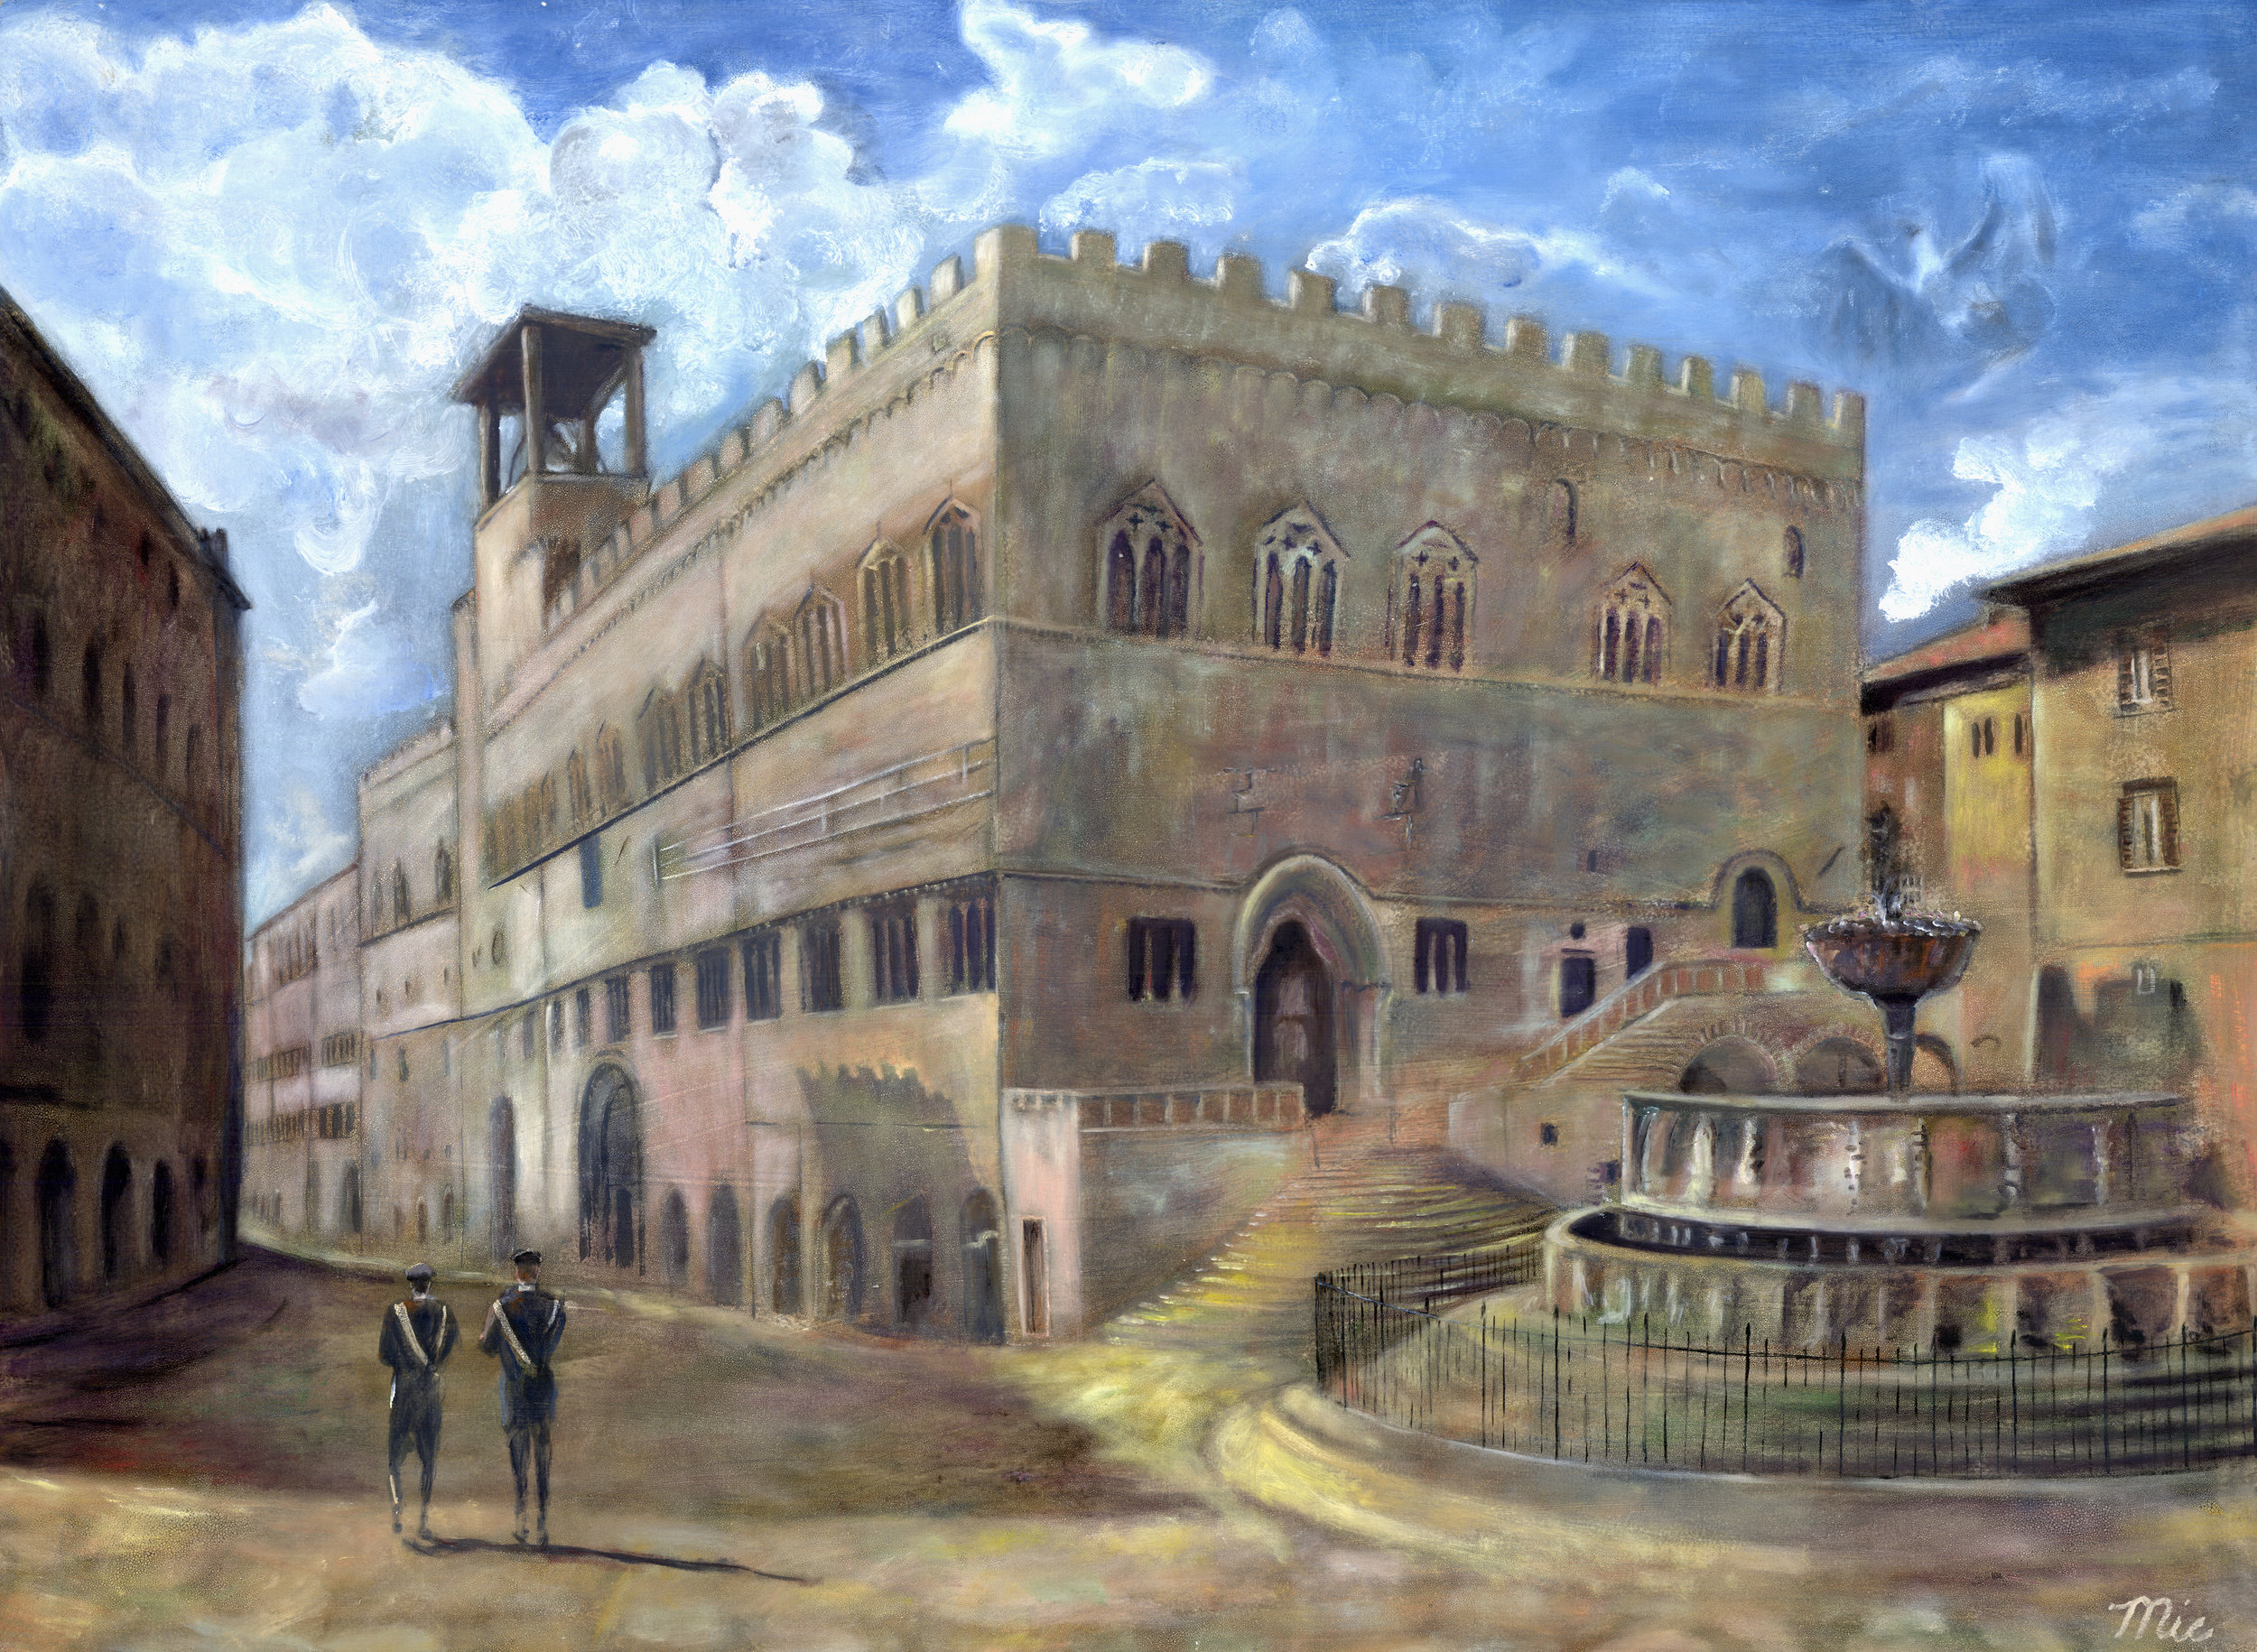 Fotanna Maggiore, Perugia, Italy - Oil on Italian Panel $7000Giclee Limited Edition and canvas prints are available. Please visit the prints gallery.